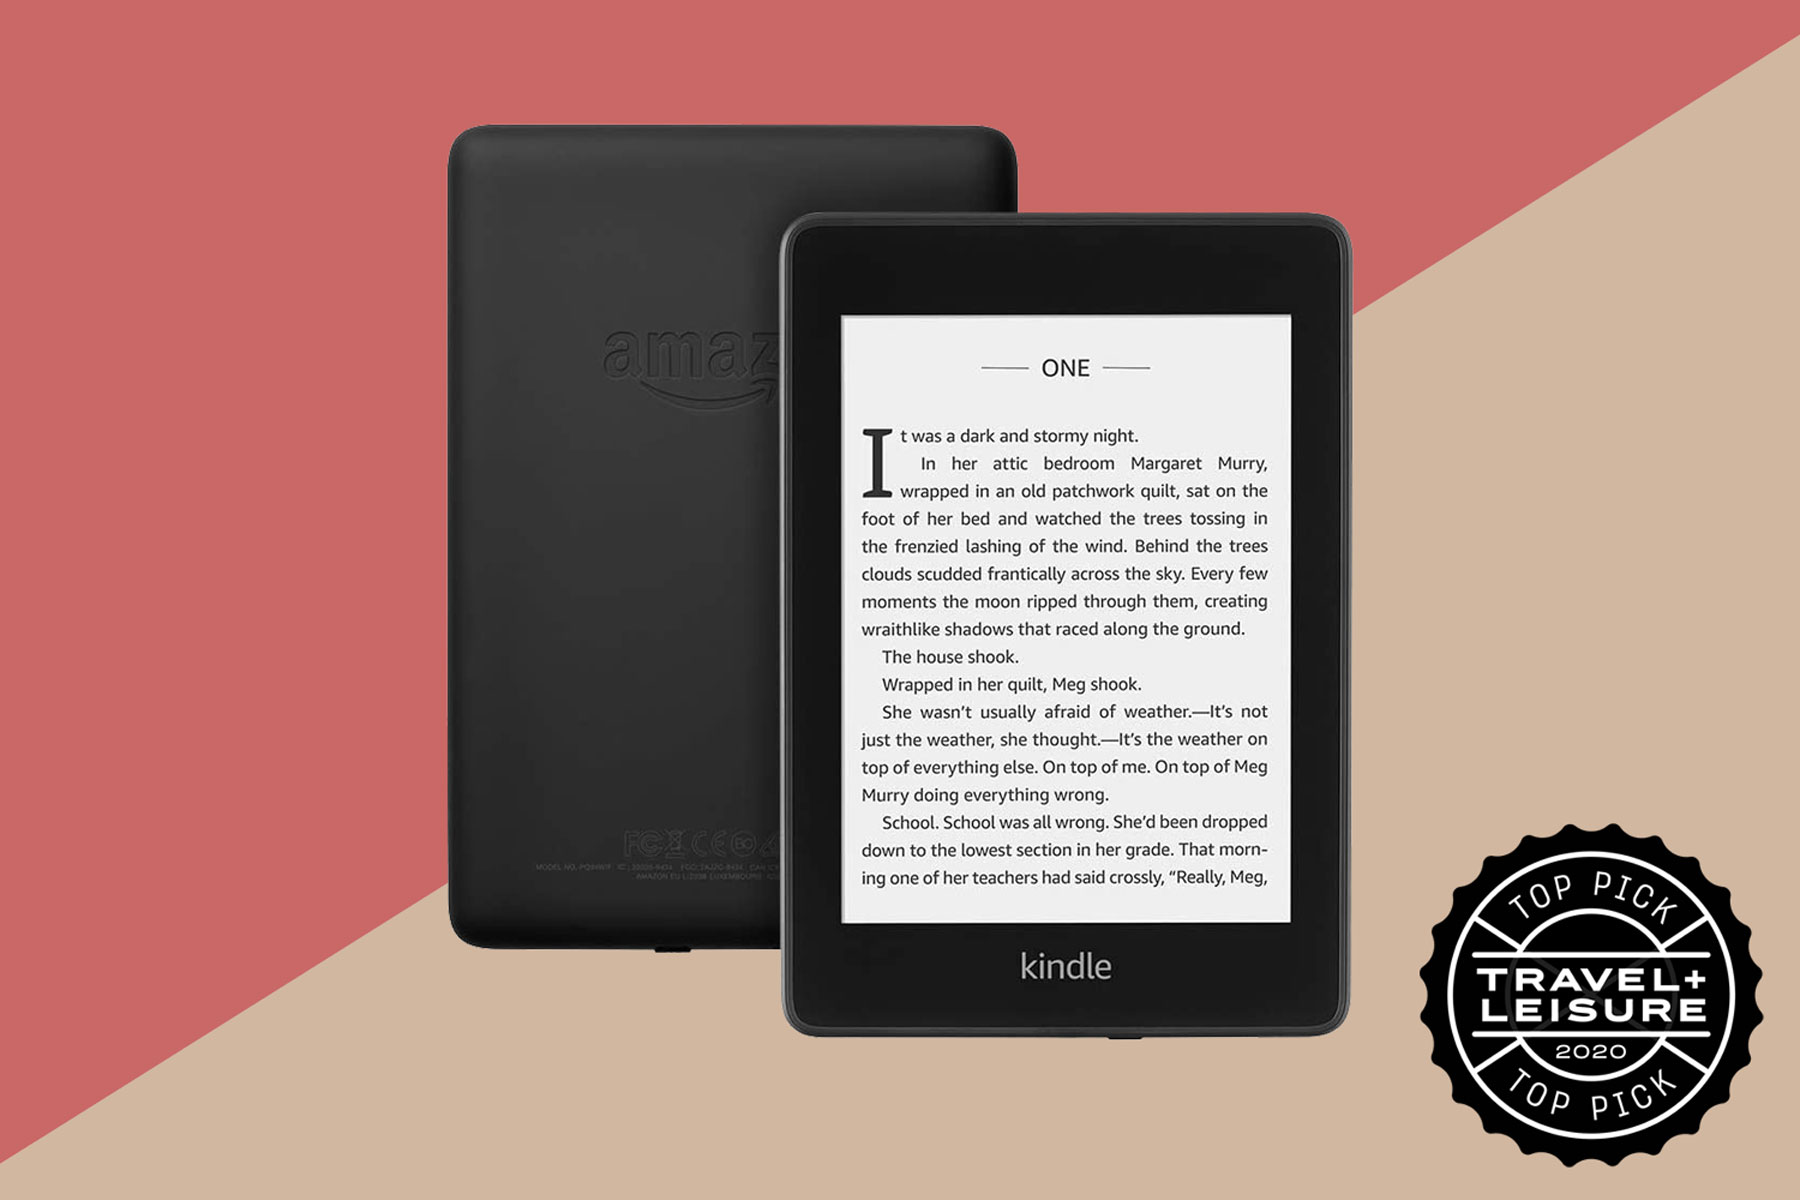 Black Amazon Kindle paperwhite e-reader